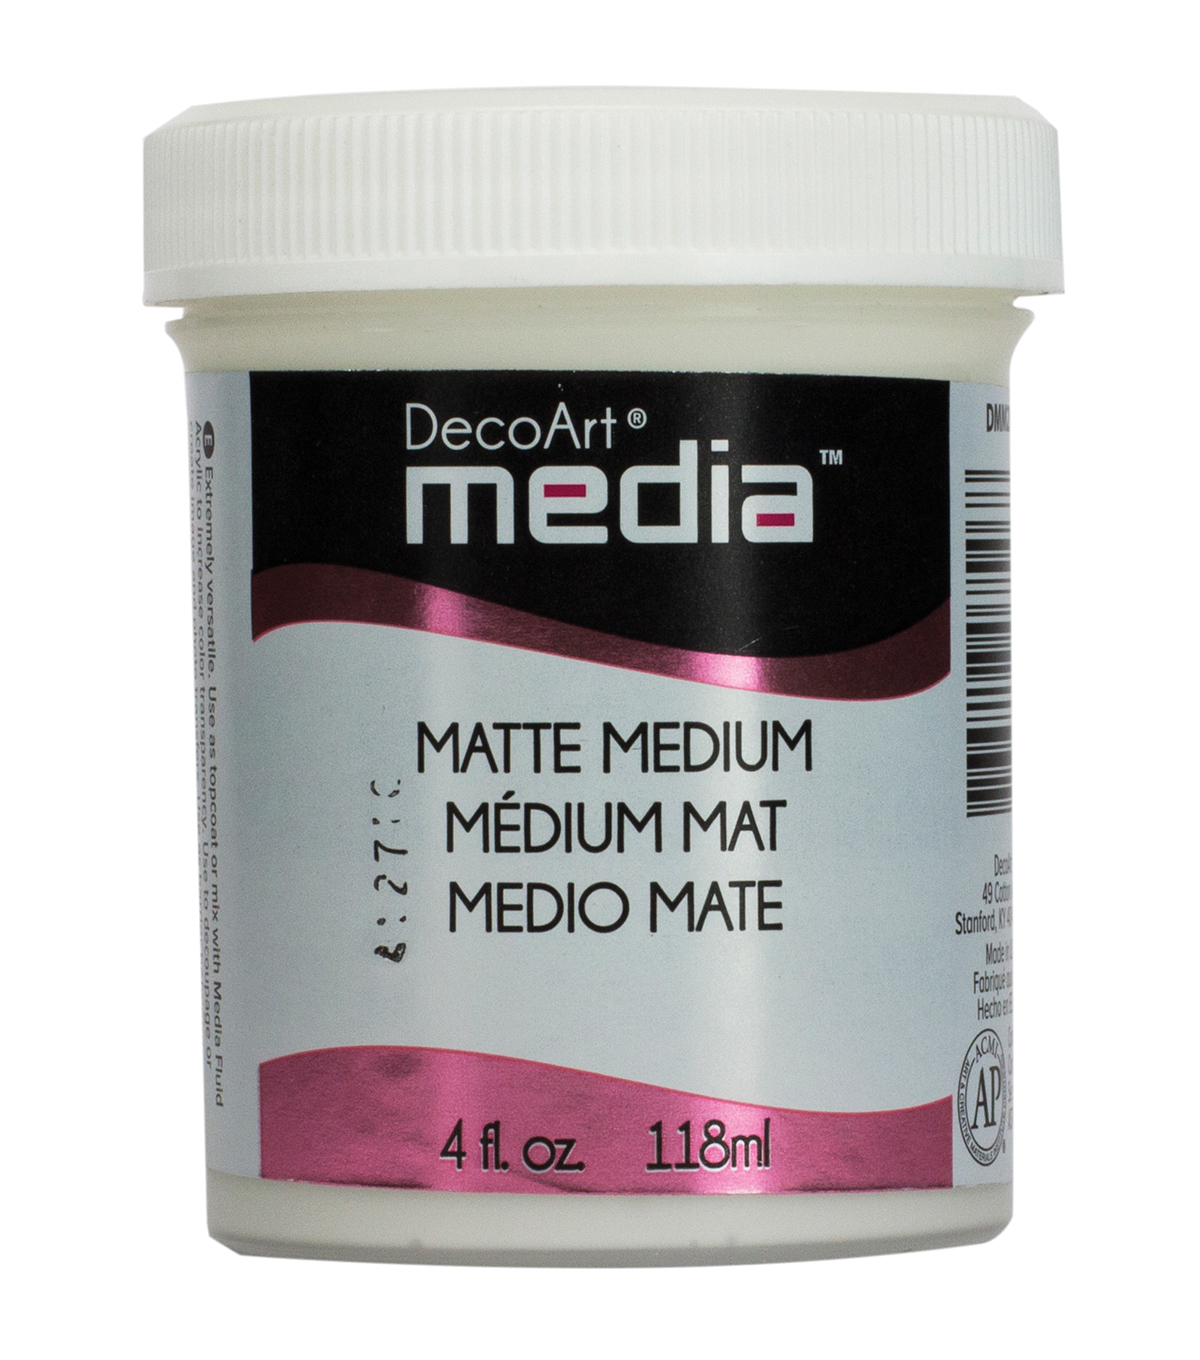 DecoArt Media 4 fl. oz. Matte Medium